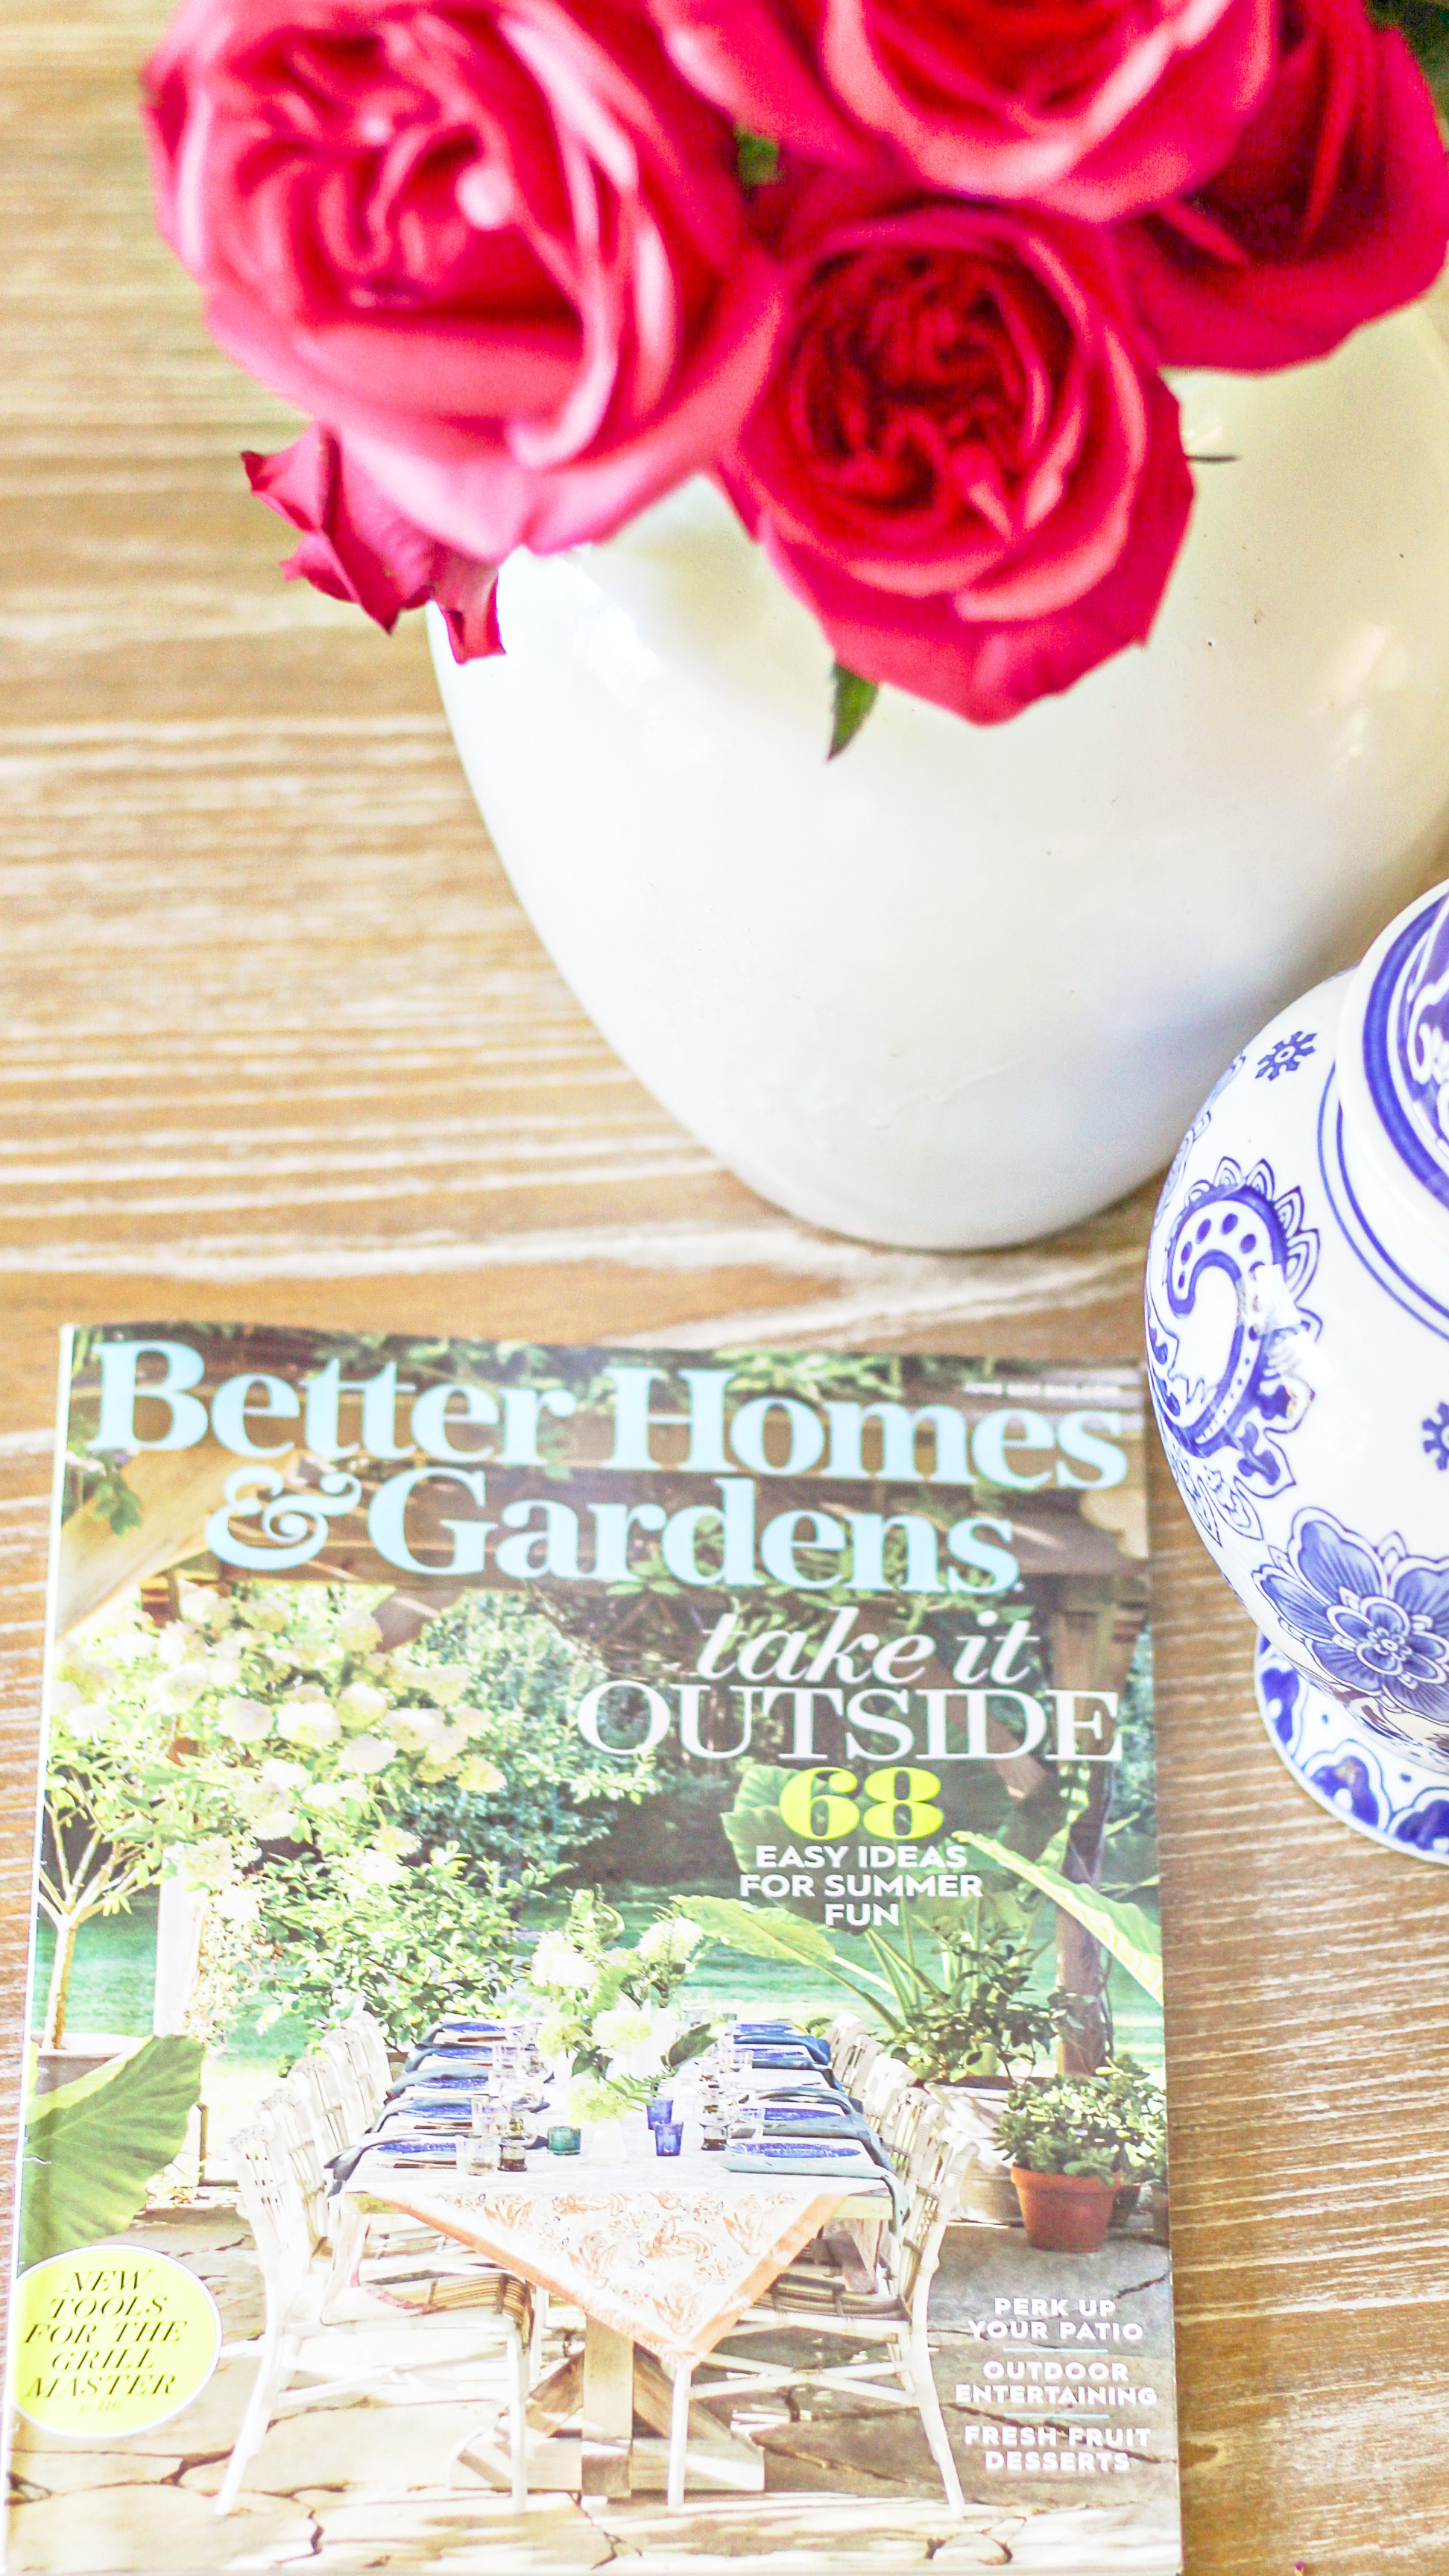 How I Got Featured in Better Homes and Gardens Magazine